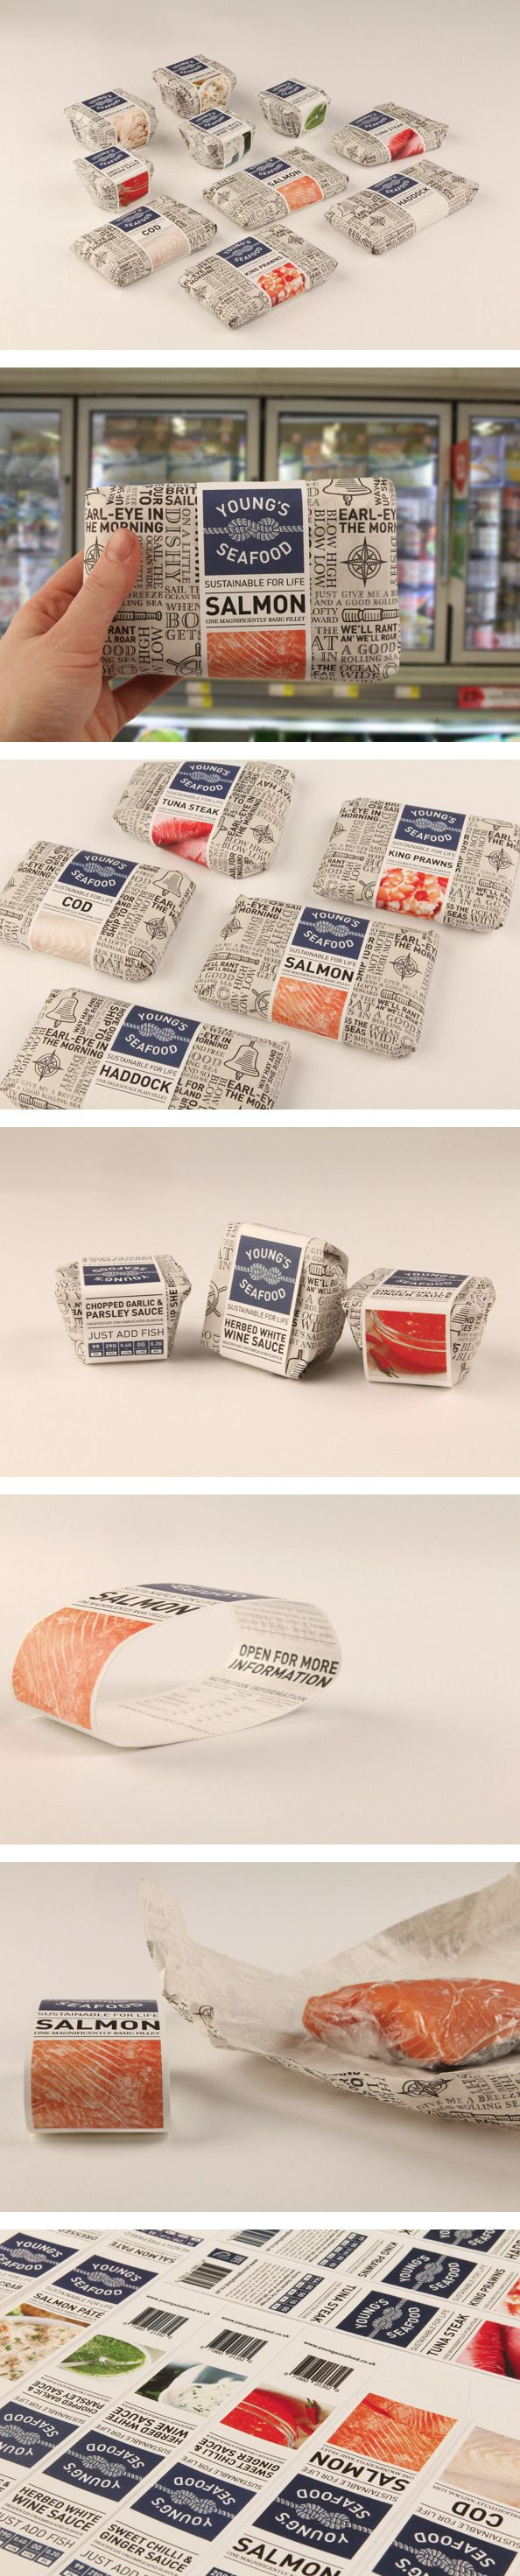 Young's Seafood by Emily Myers. Repinned by www.strobl-kriegner.com #branding #packaging #design #creative #marketing